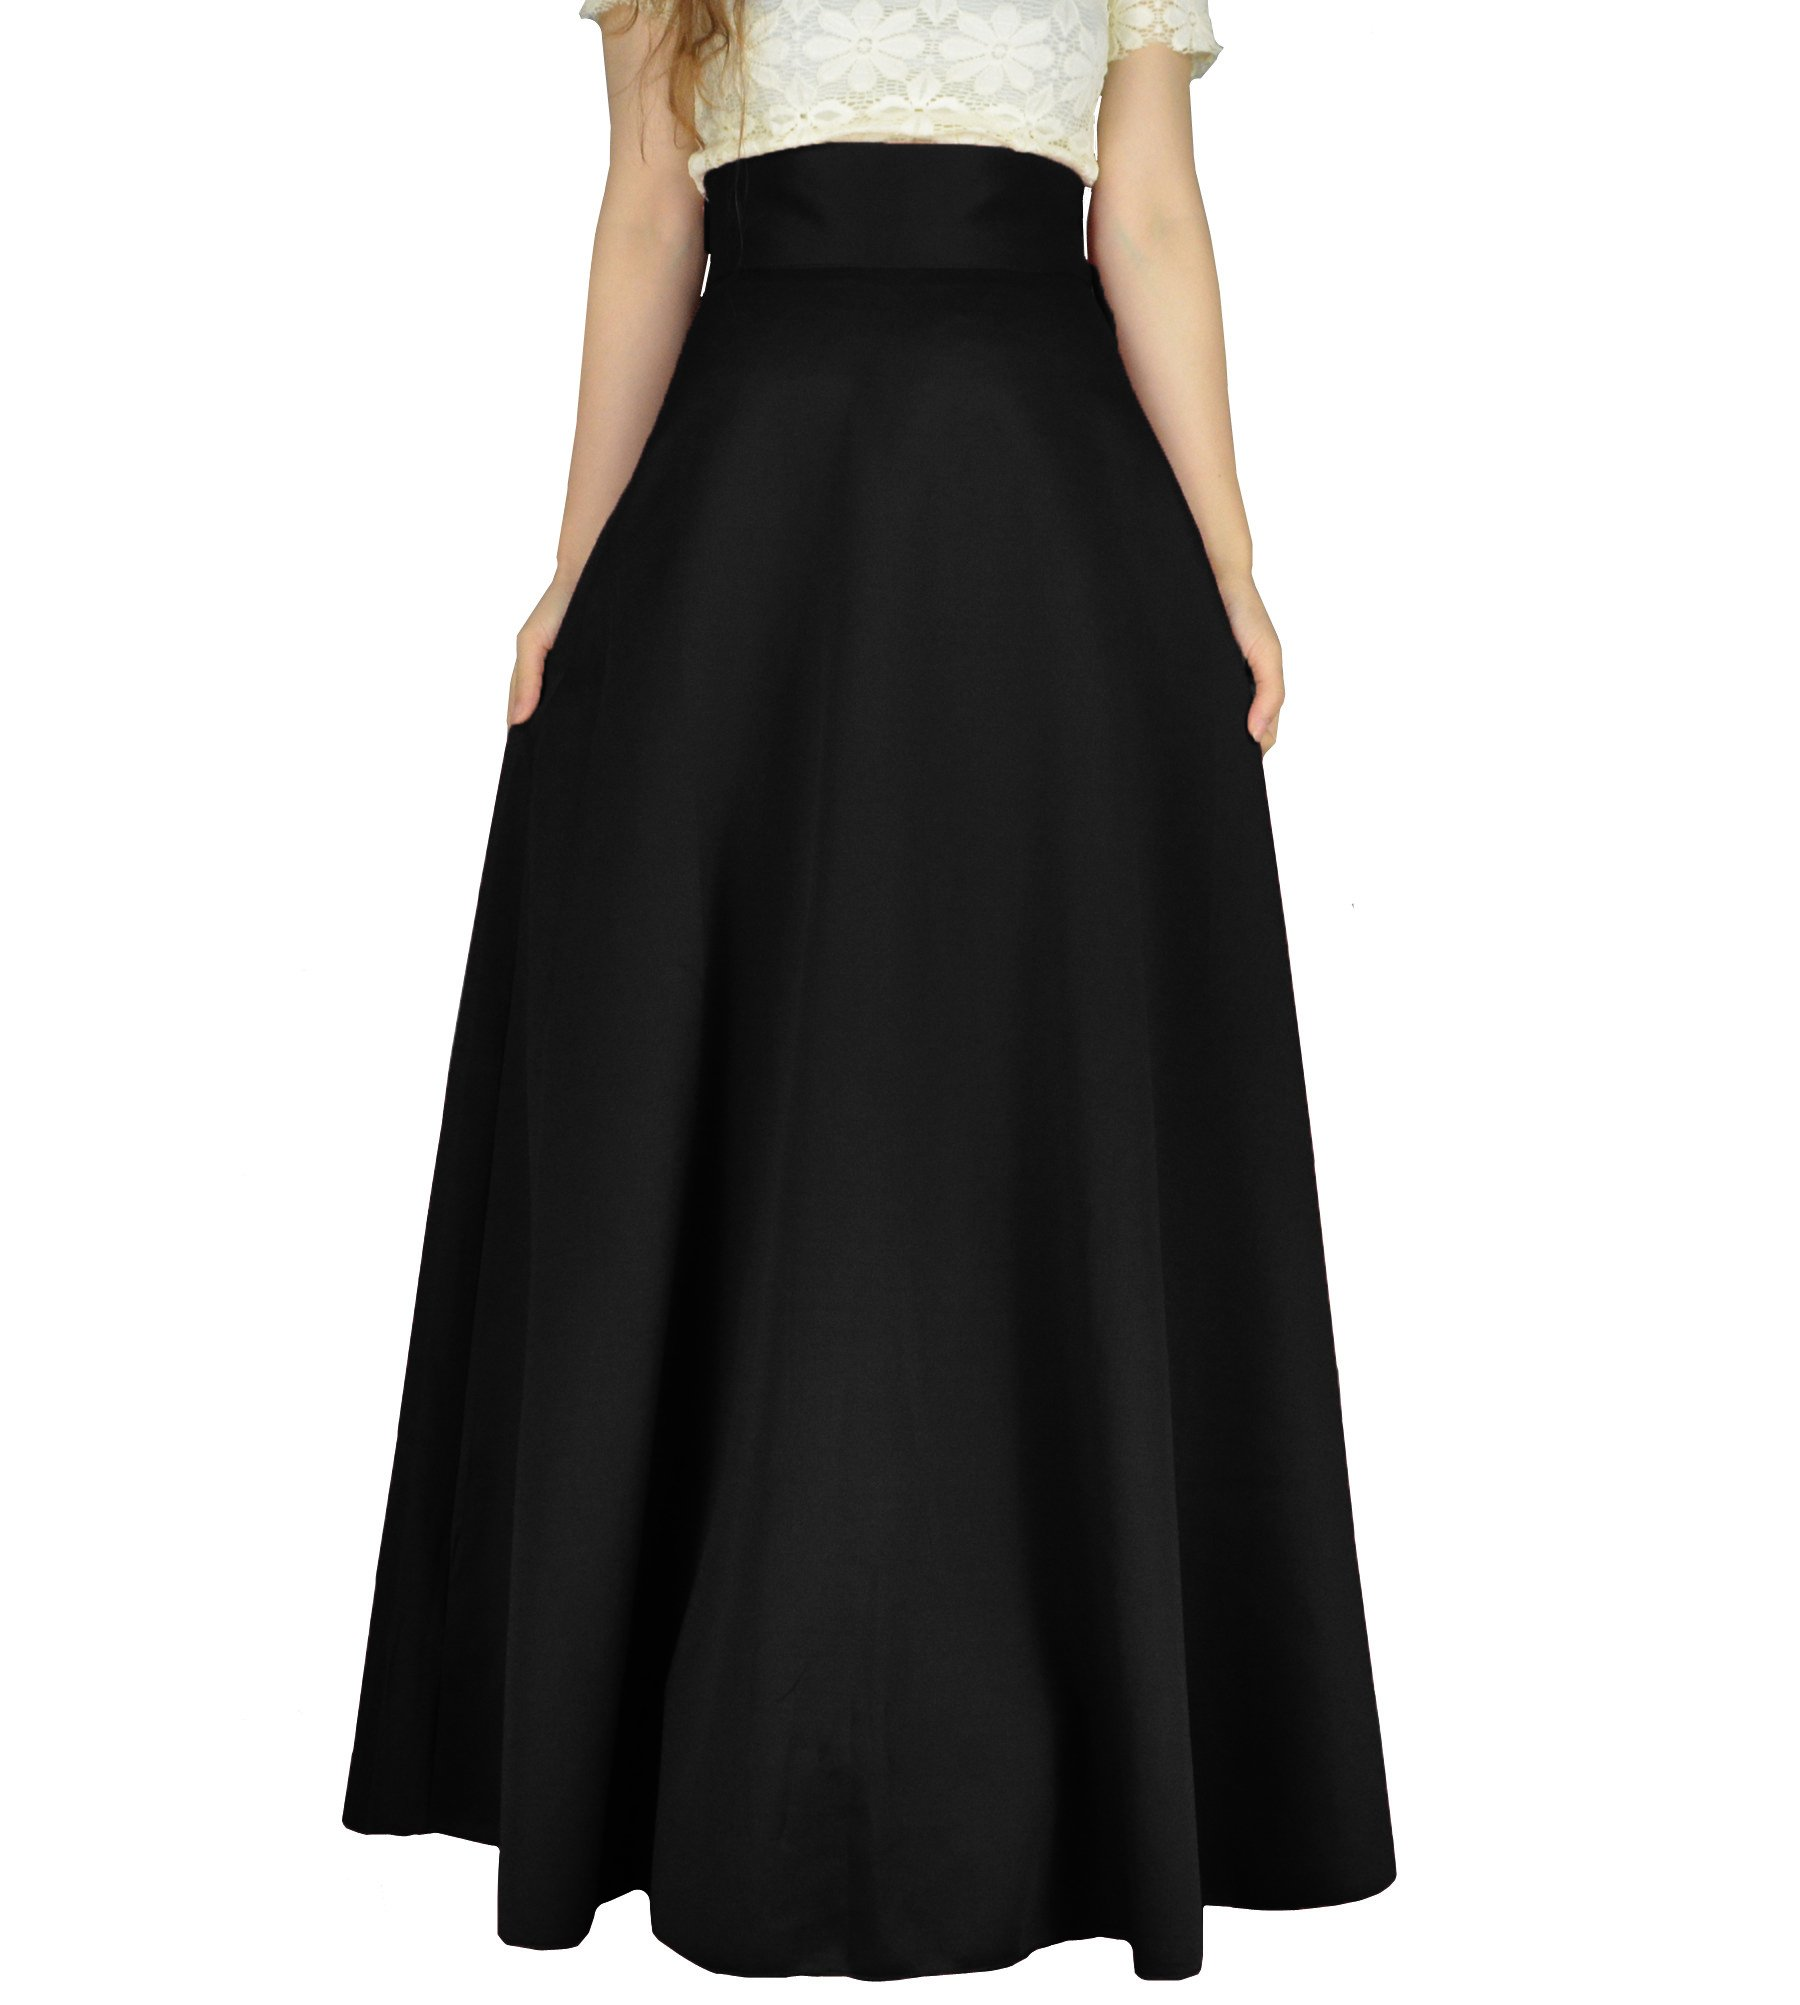 YSJERA Women's High Waist A-Line Pleated Solid Vintage Swing Maxi Skirts Midi Skirt Party (S, Black Long)